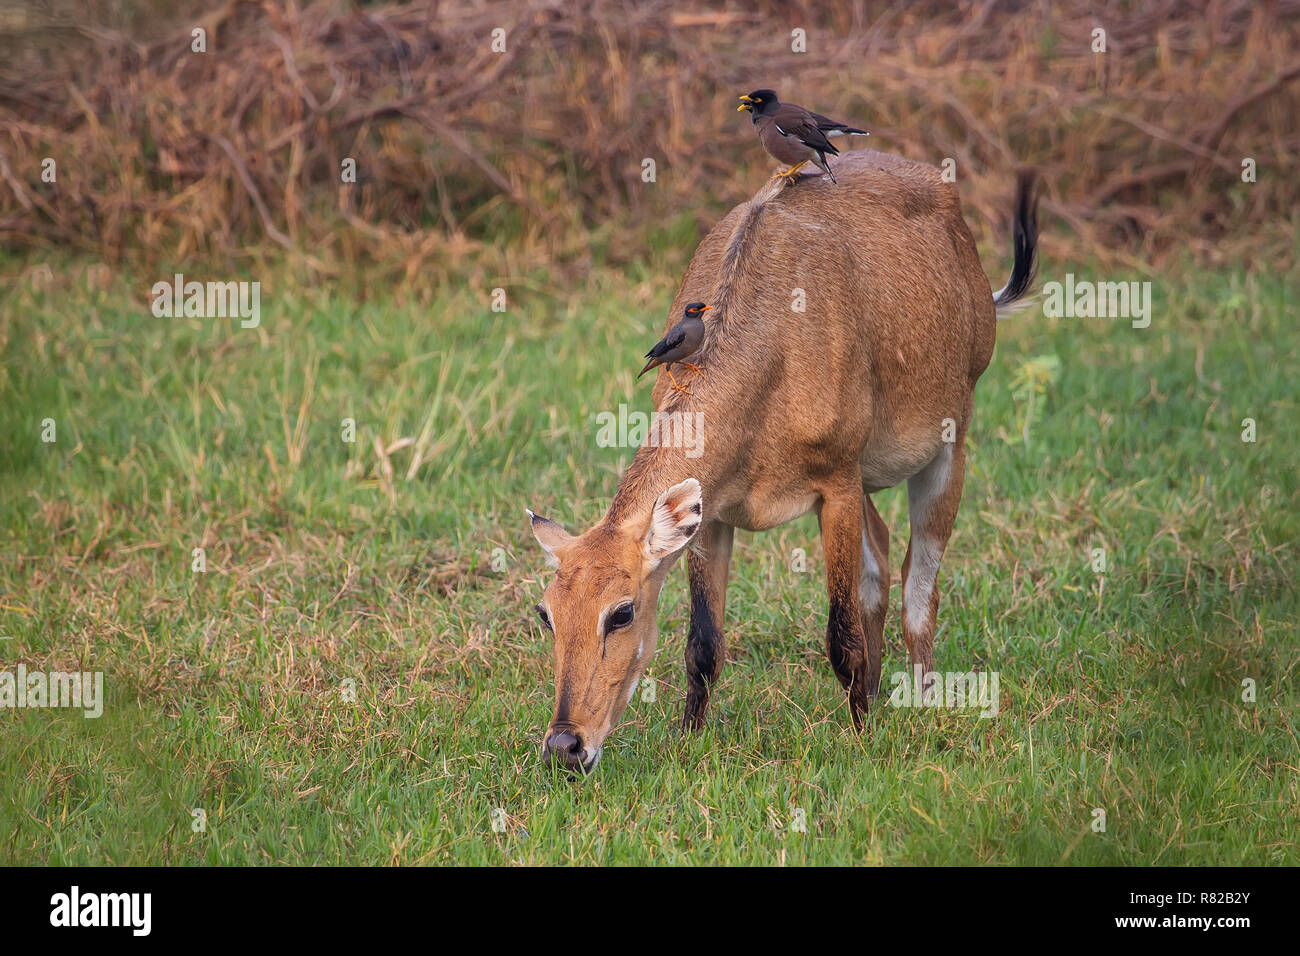 Female Nilgai with Brahminy mynas sitting on her in Keoladeo National Park, Bharatpur, India. Nilgai is the largest Asian antelope and is endemic to t - Stock Image